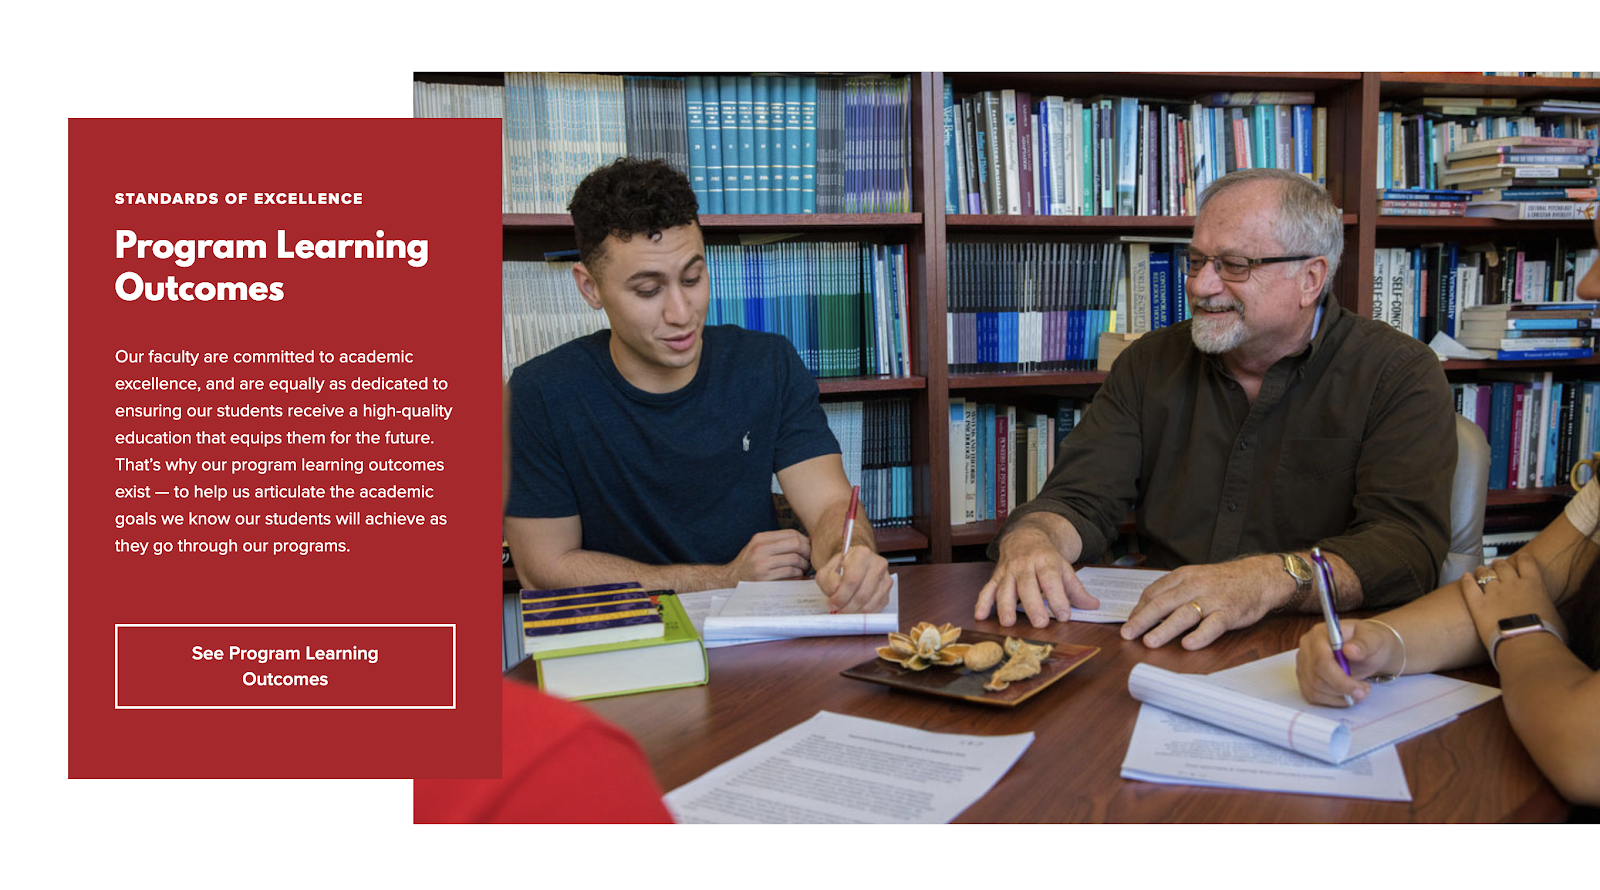 Biola University's outcomes section